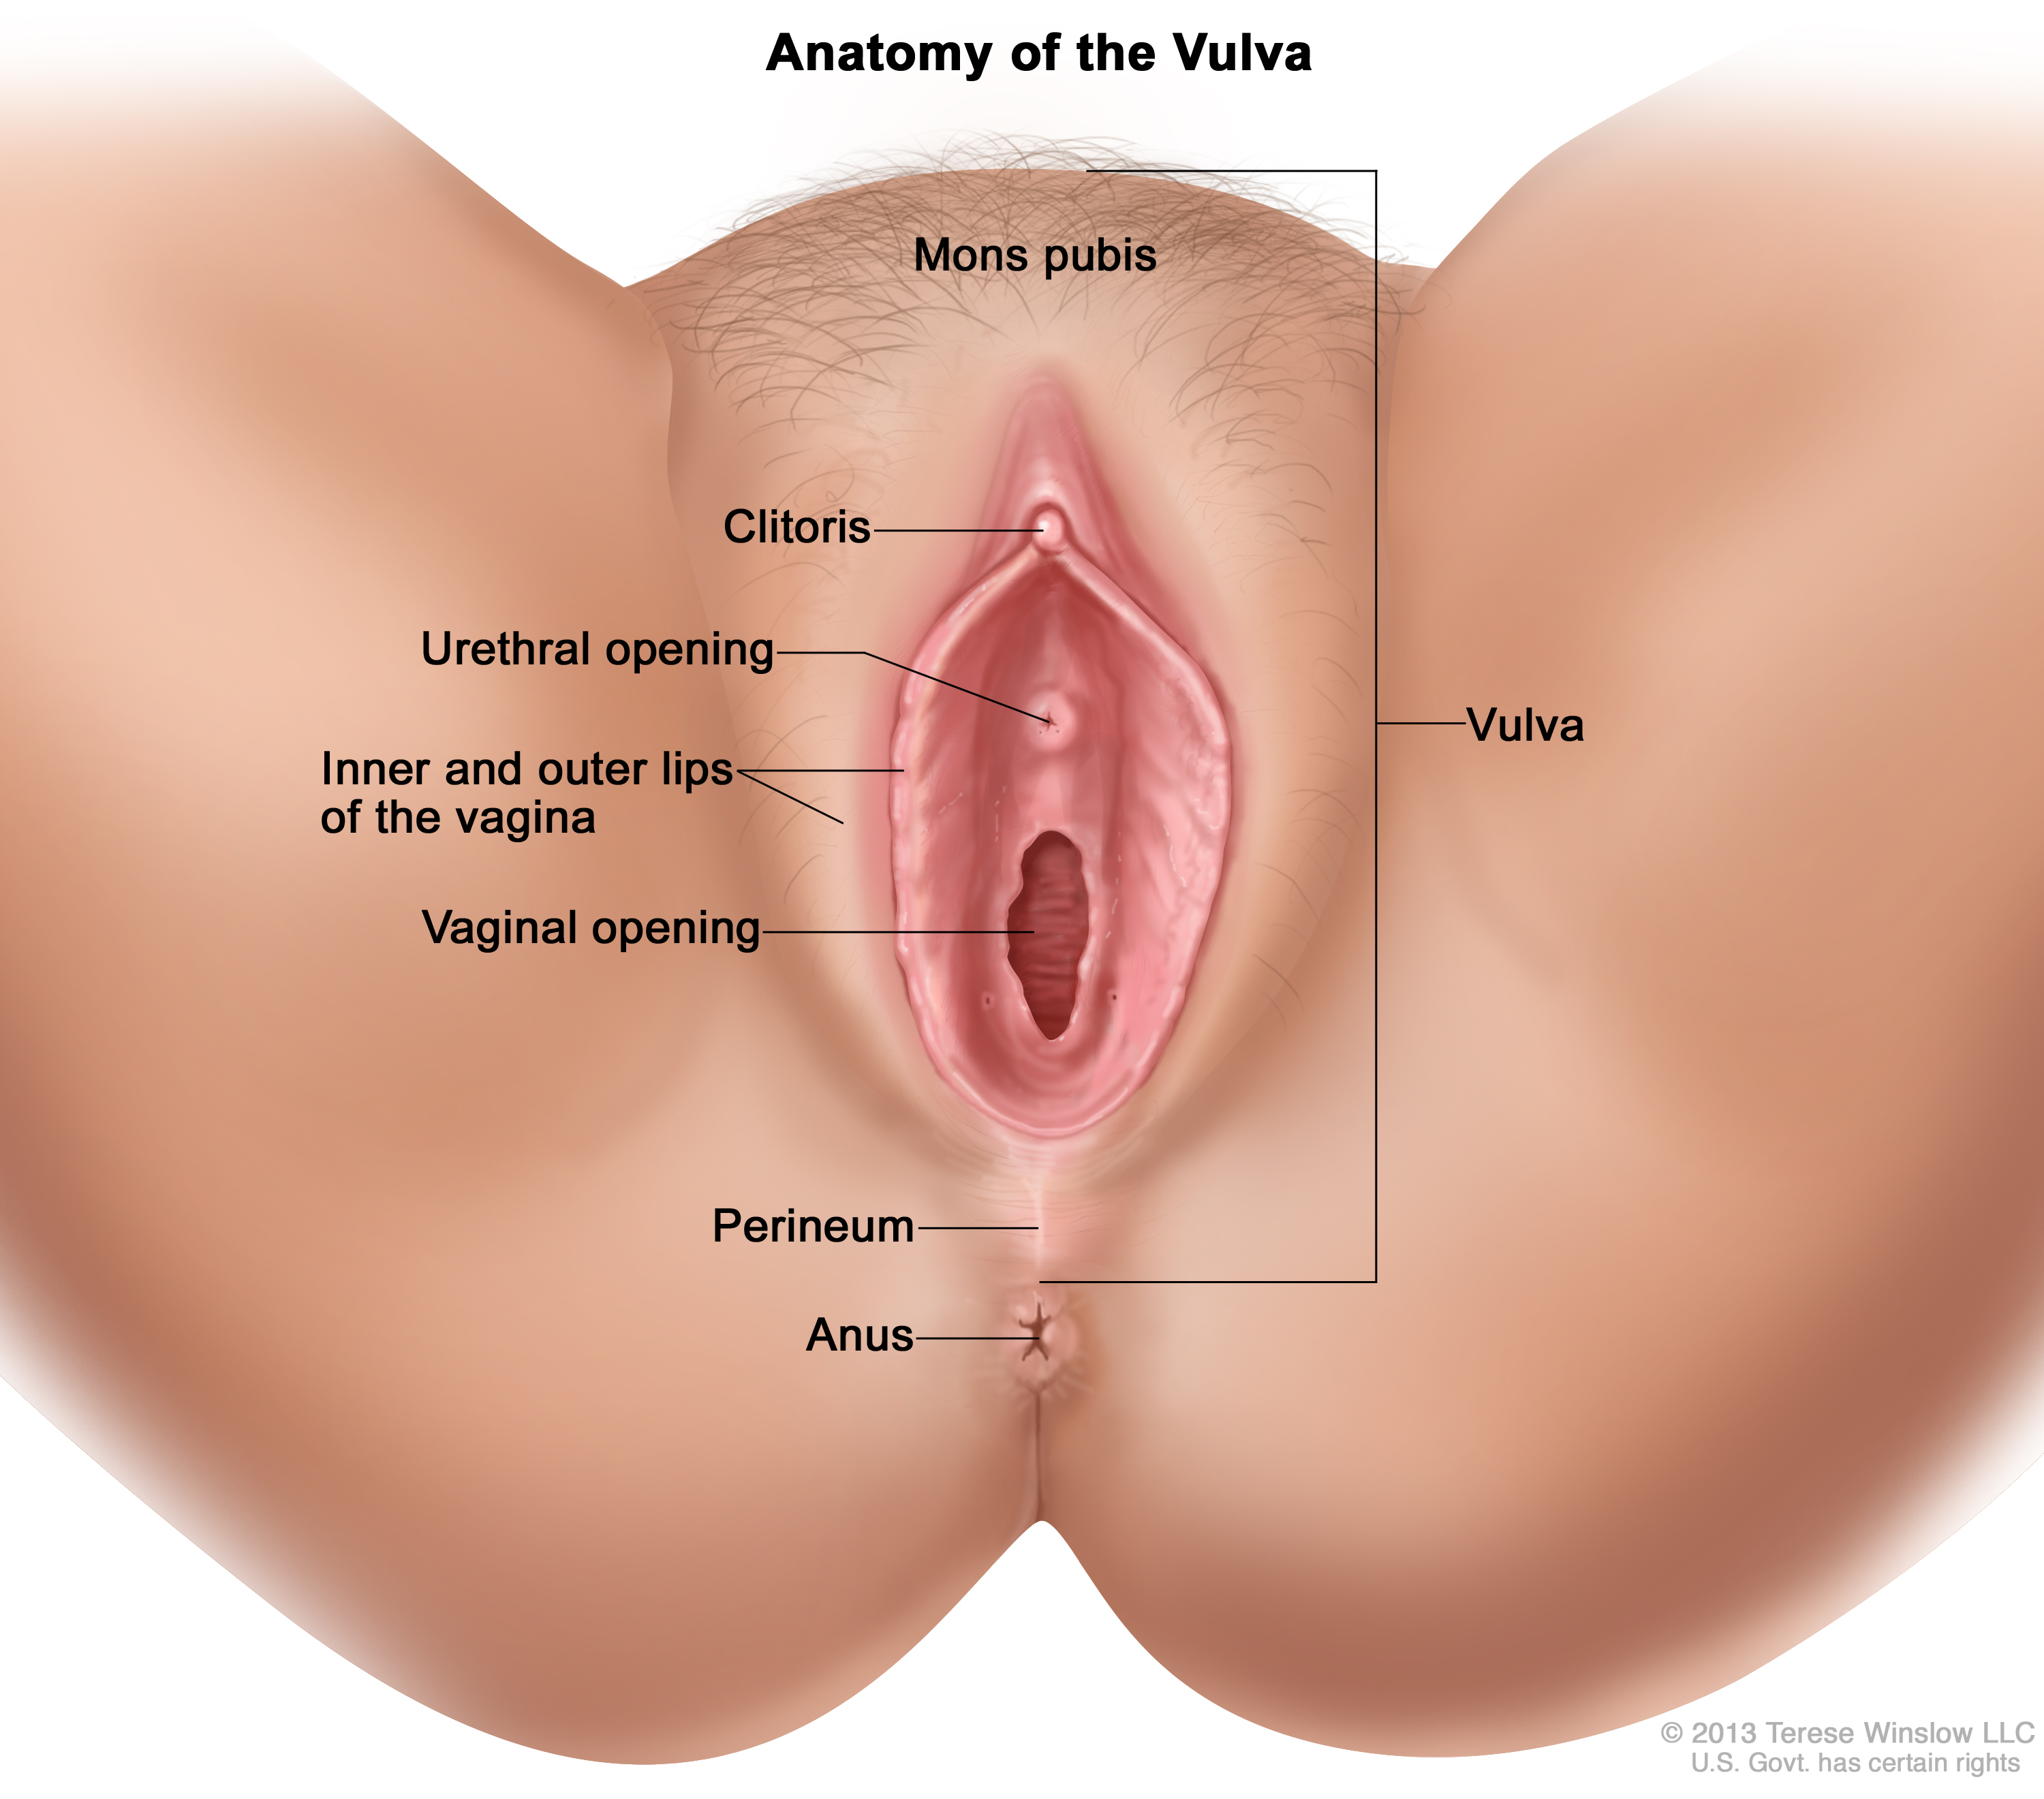 Rendering of the anatomy of the vulva